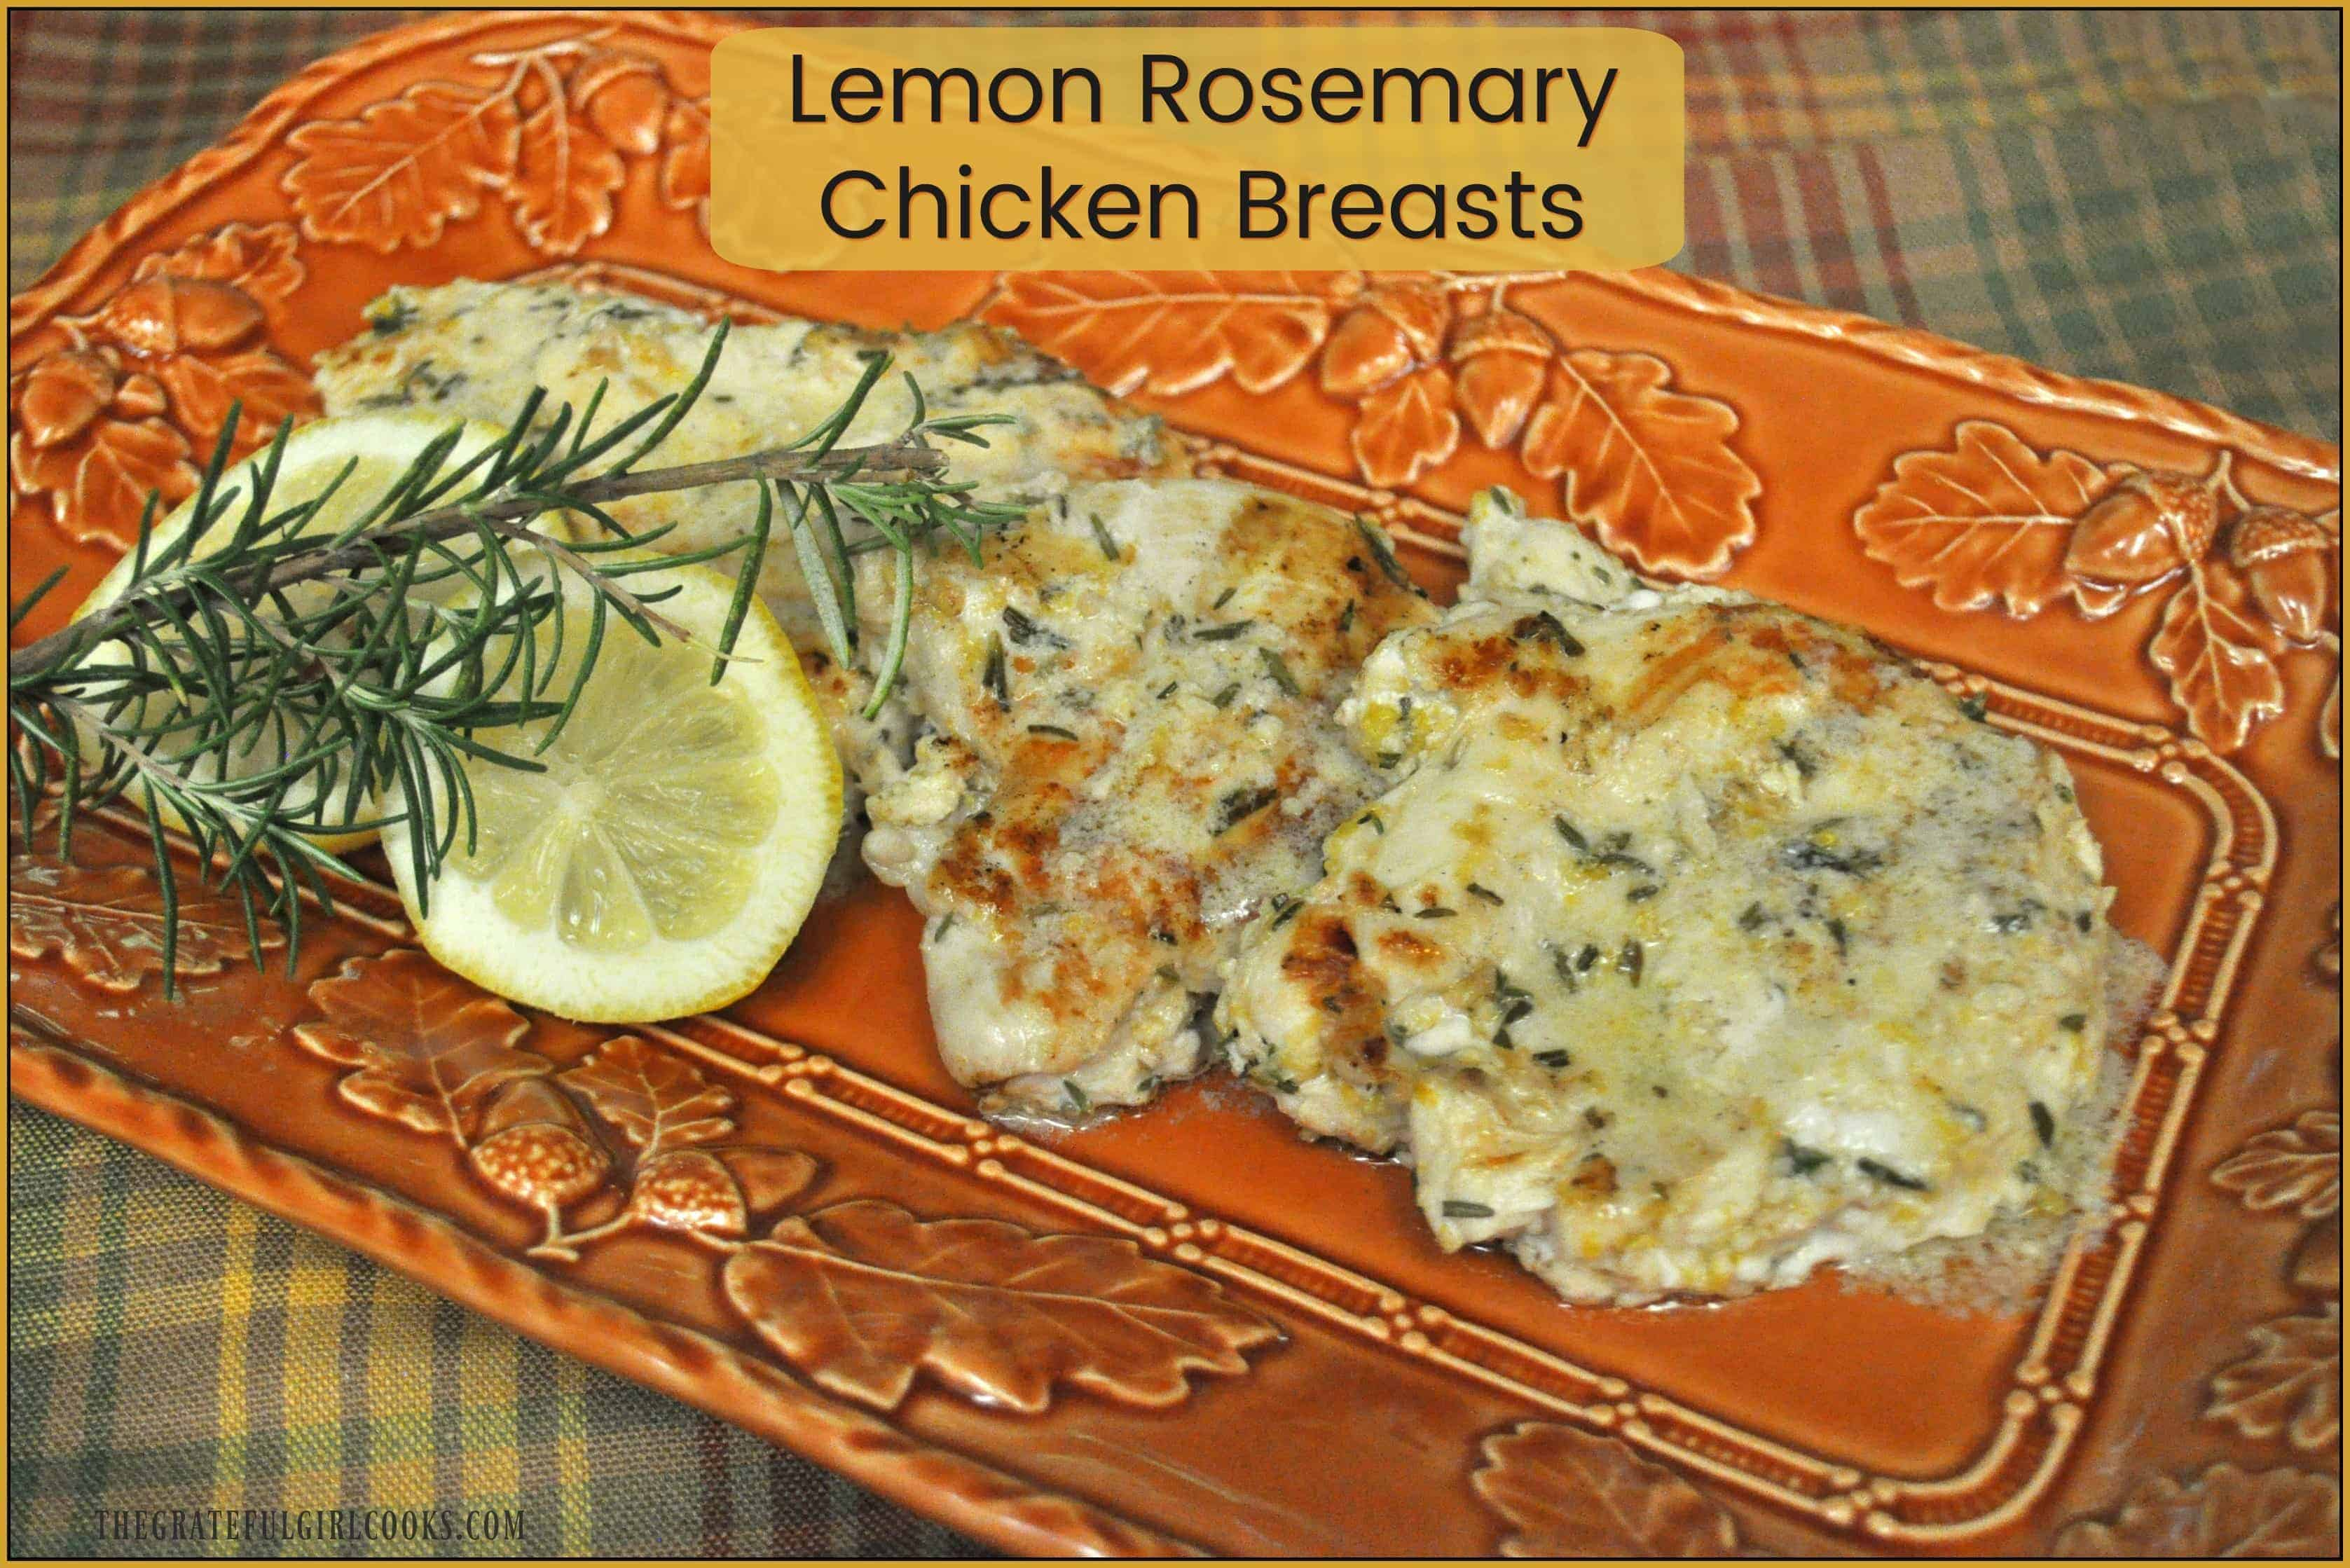 Lemon Rosemary Chicken Breasts / The Grateful Girl Cooks! Marinated, grilled, and served with a lemon glaze, this low calorie and delicious recipe is sure to impress!